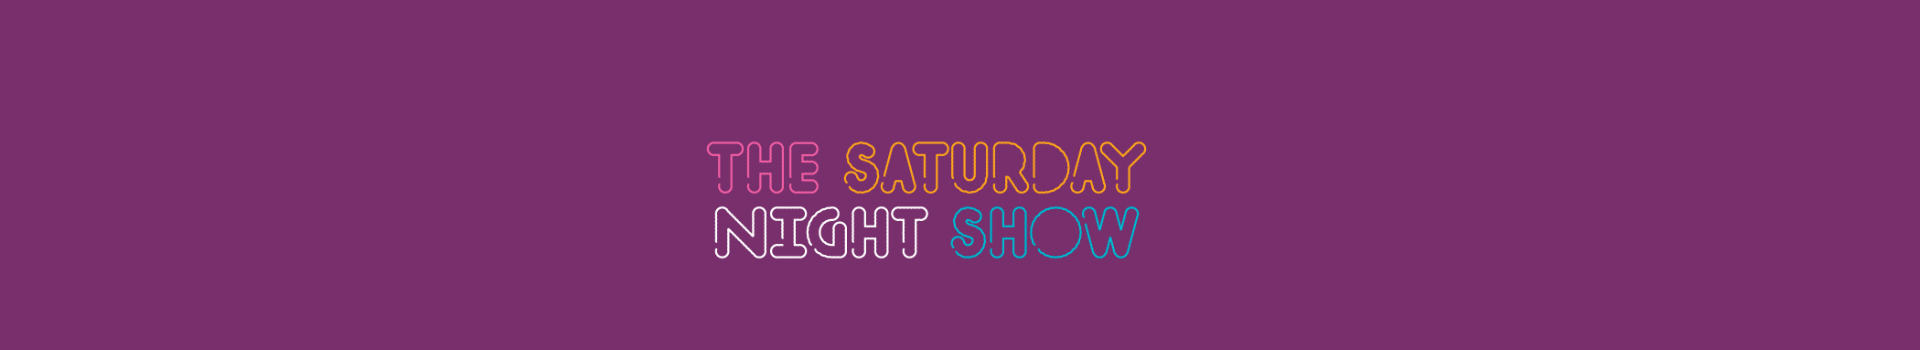 The Saturday Night Show banner image